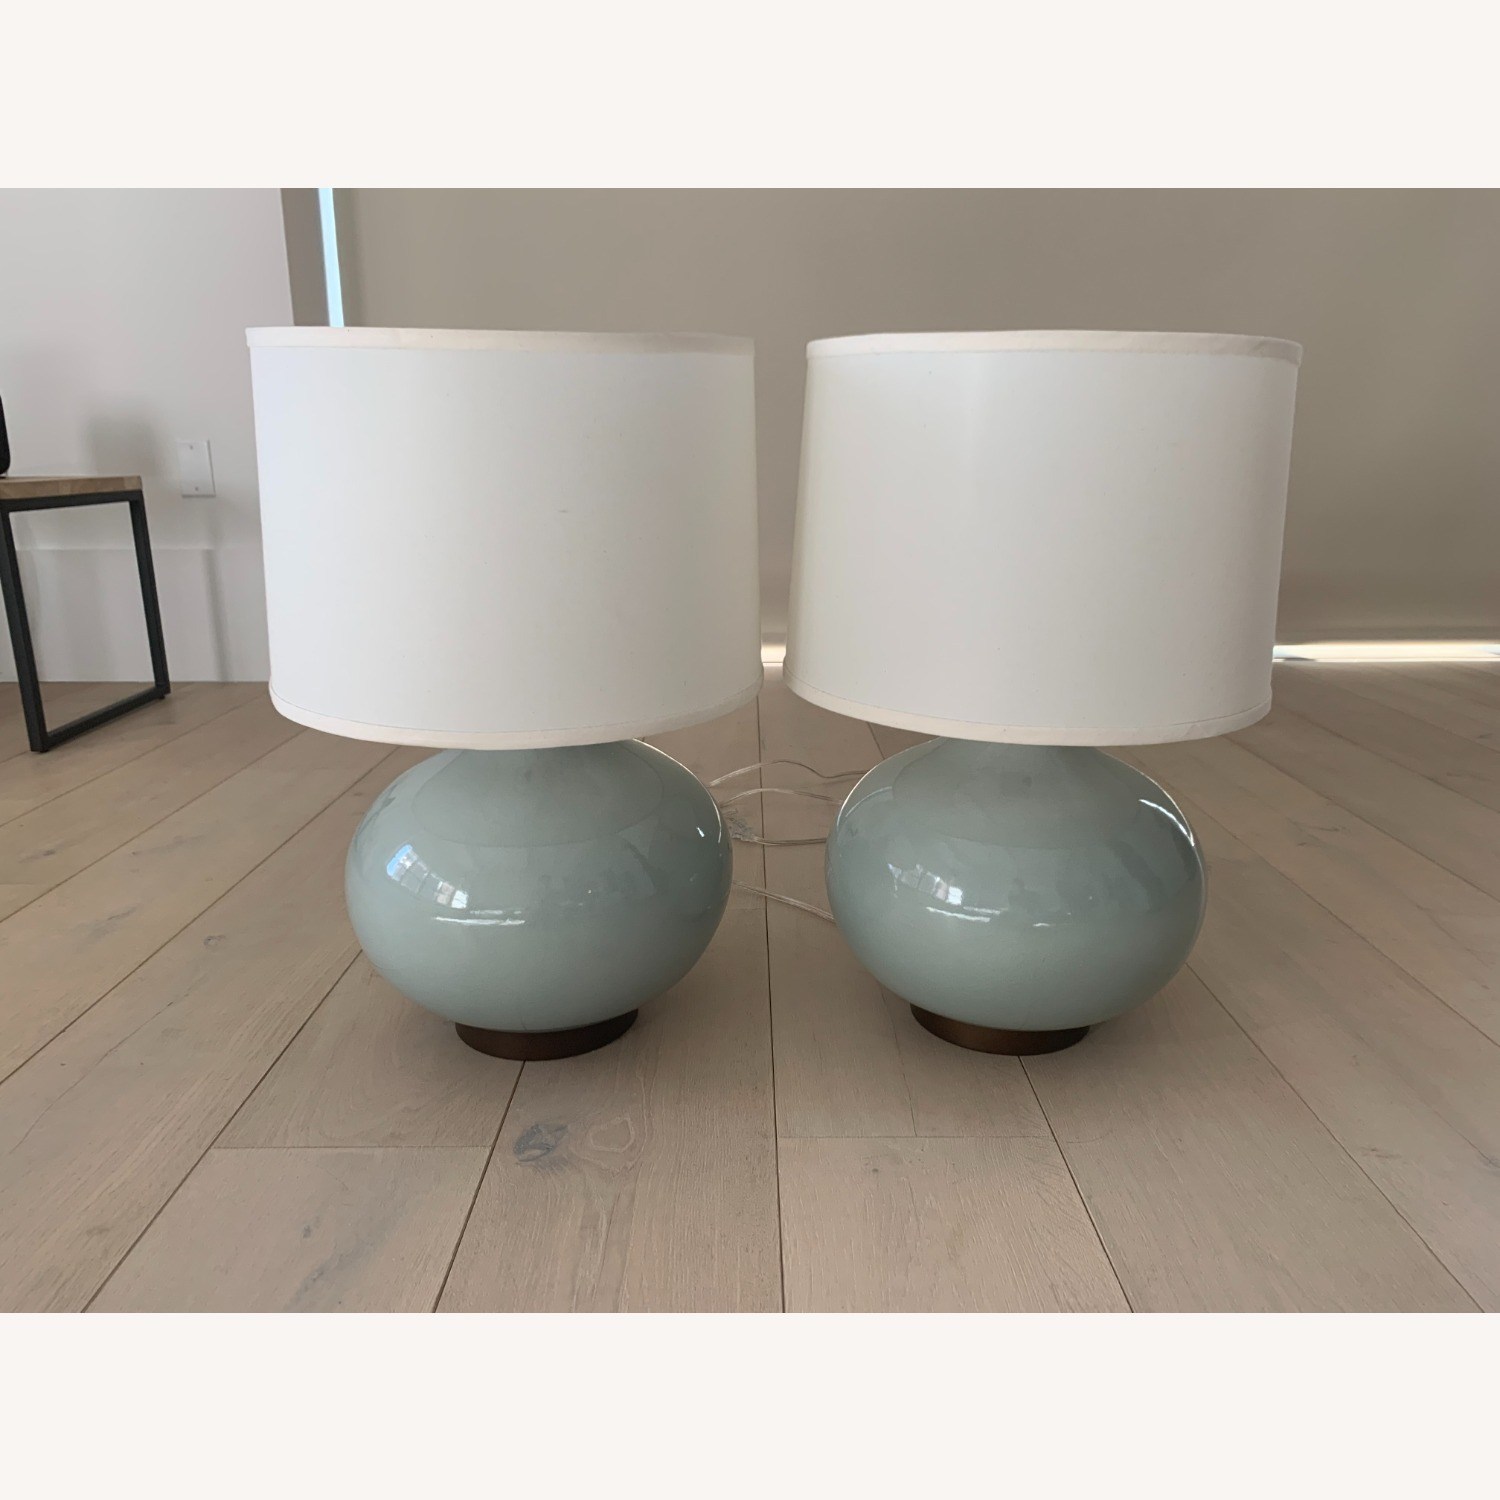 Crate & Barrel Merie Table Lamps (set of 2) - image-1